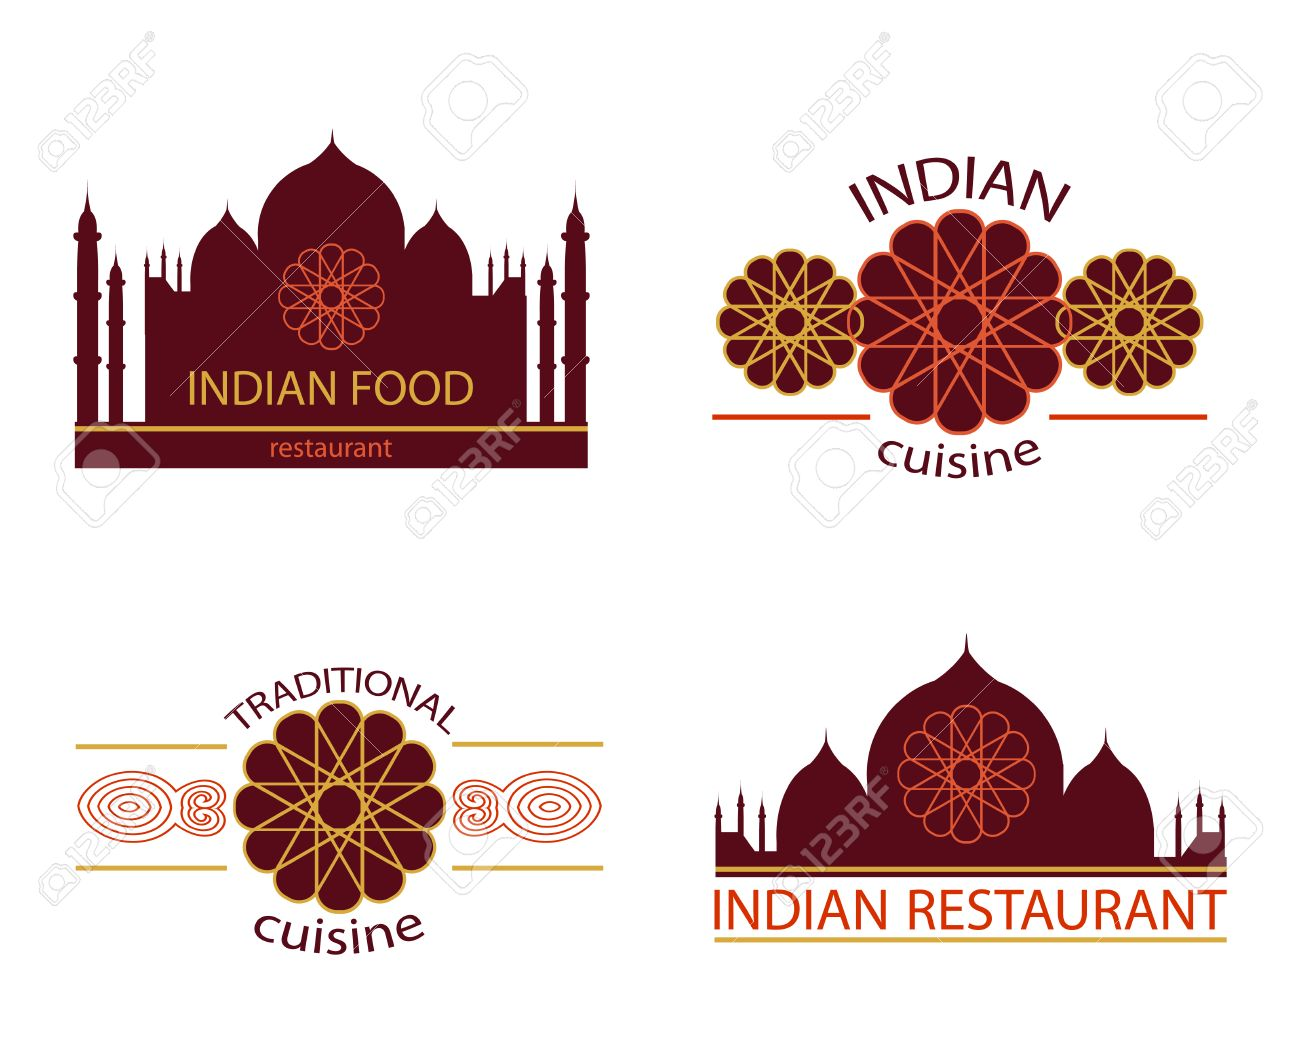 Indian Food Logo Creative Traditional Restaurant Icon Vector Royalty Free Cliparts Vectors And Stock Illustration Image 57733789